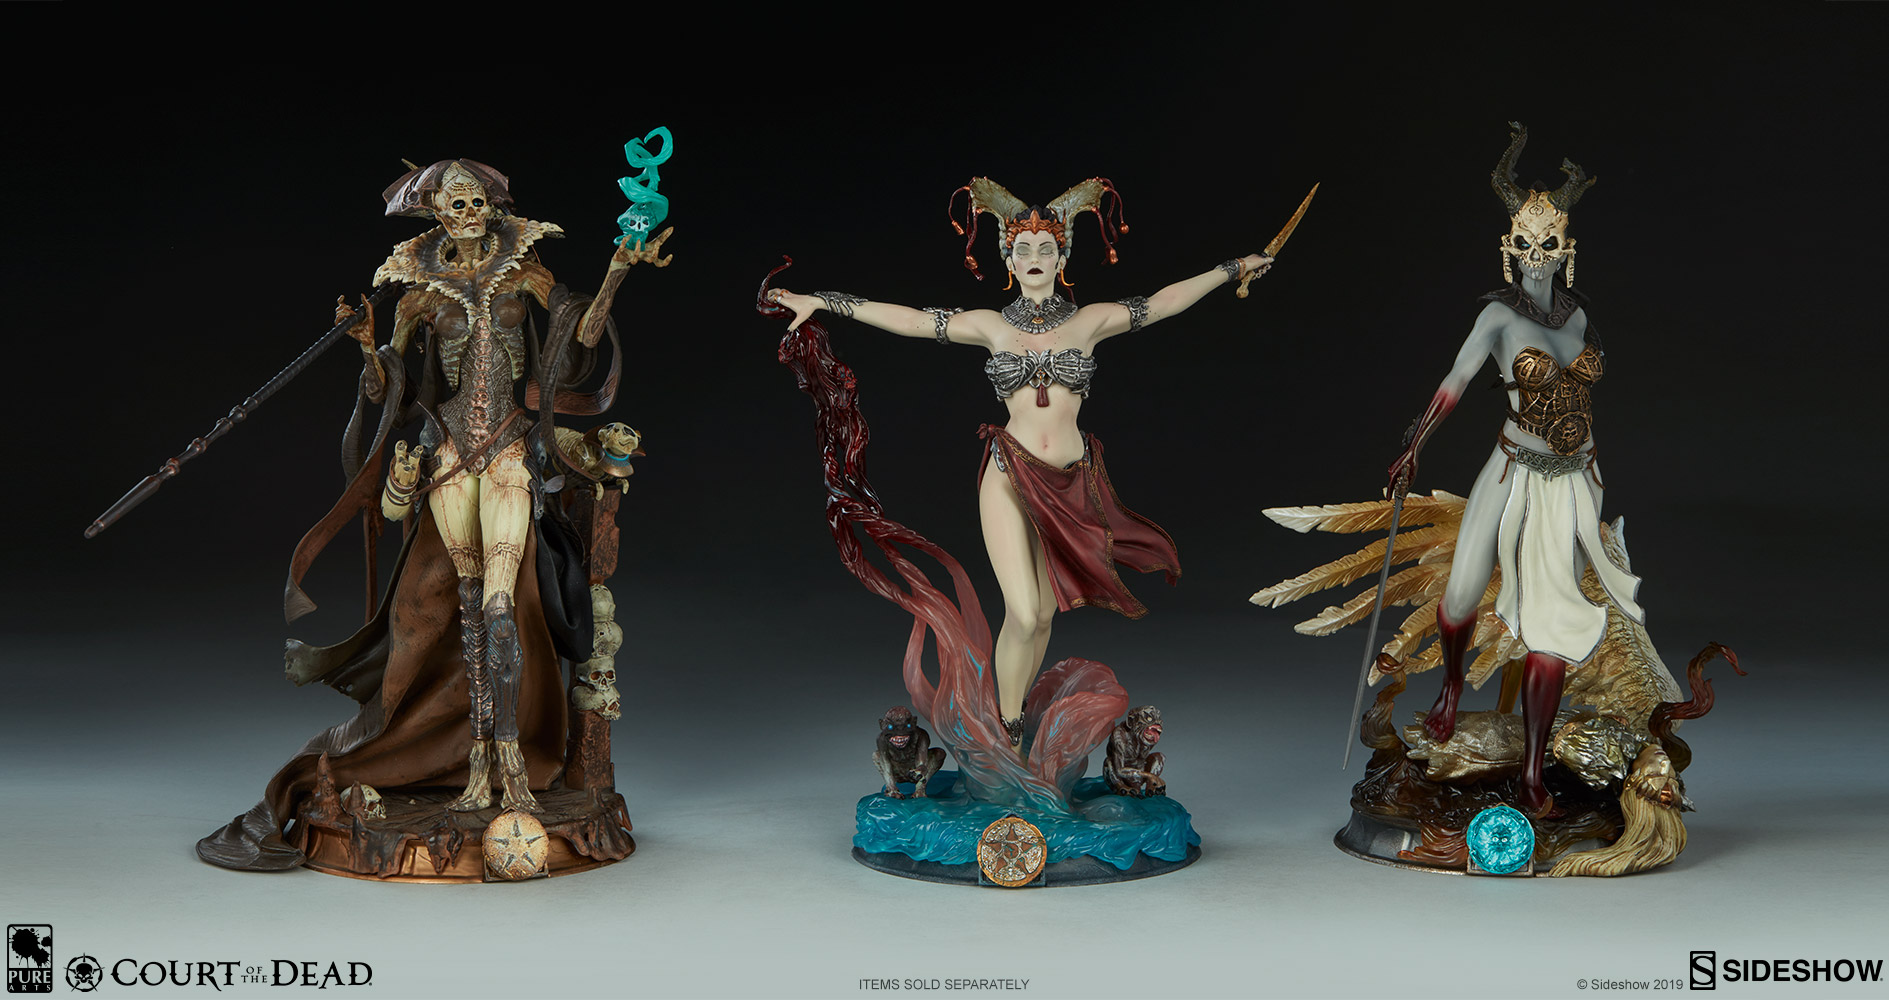 https://www.sideshow.com/storage/product-images/500063/gethsemoni-queens-conjuring_court-of-the-dead_gallery_5cfaaa1b13fb7.jpg